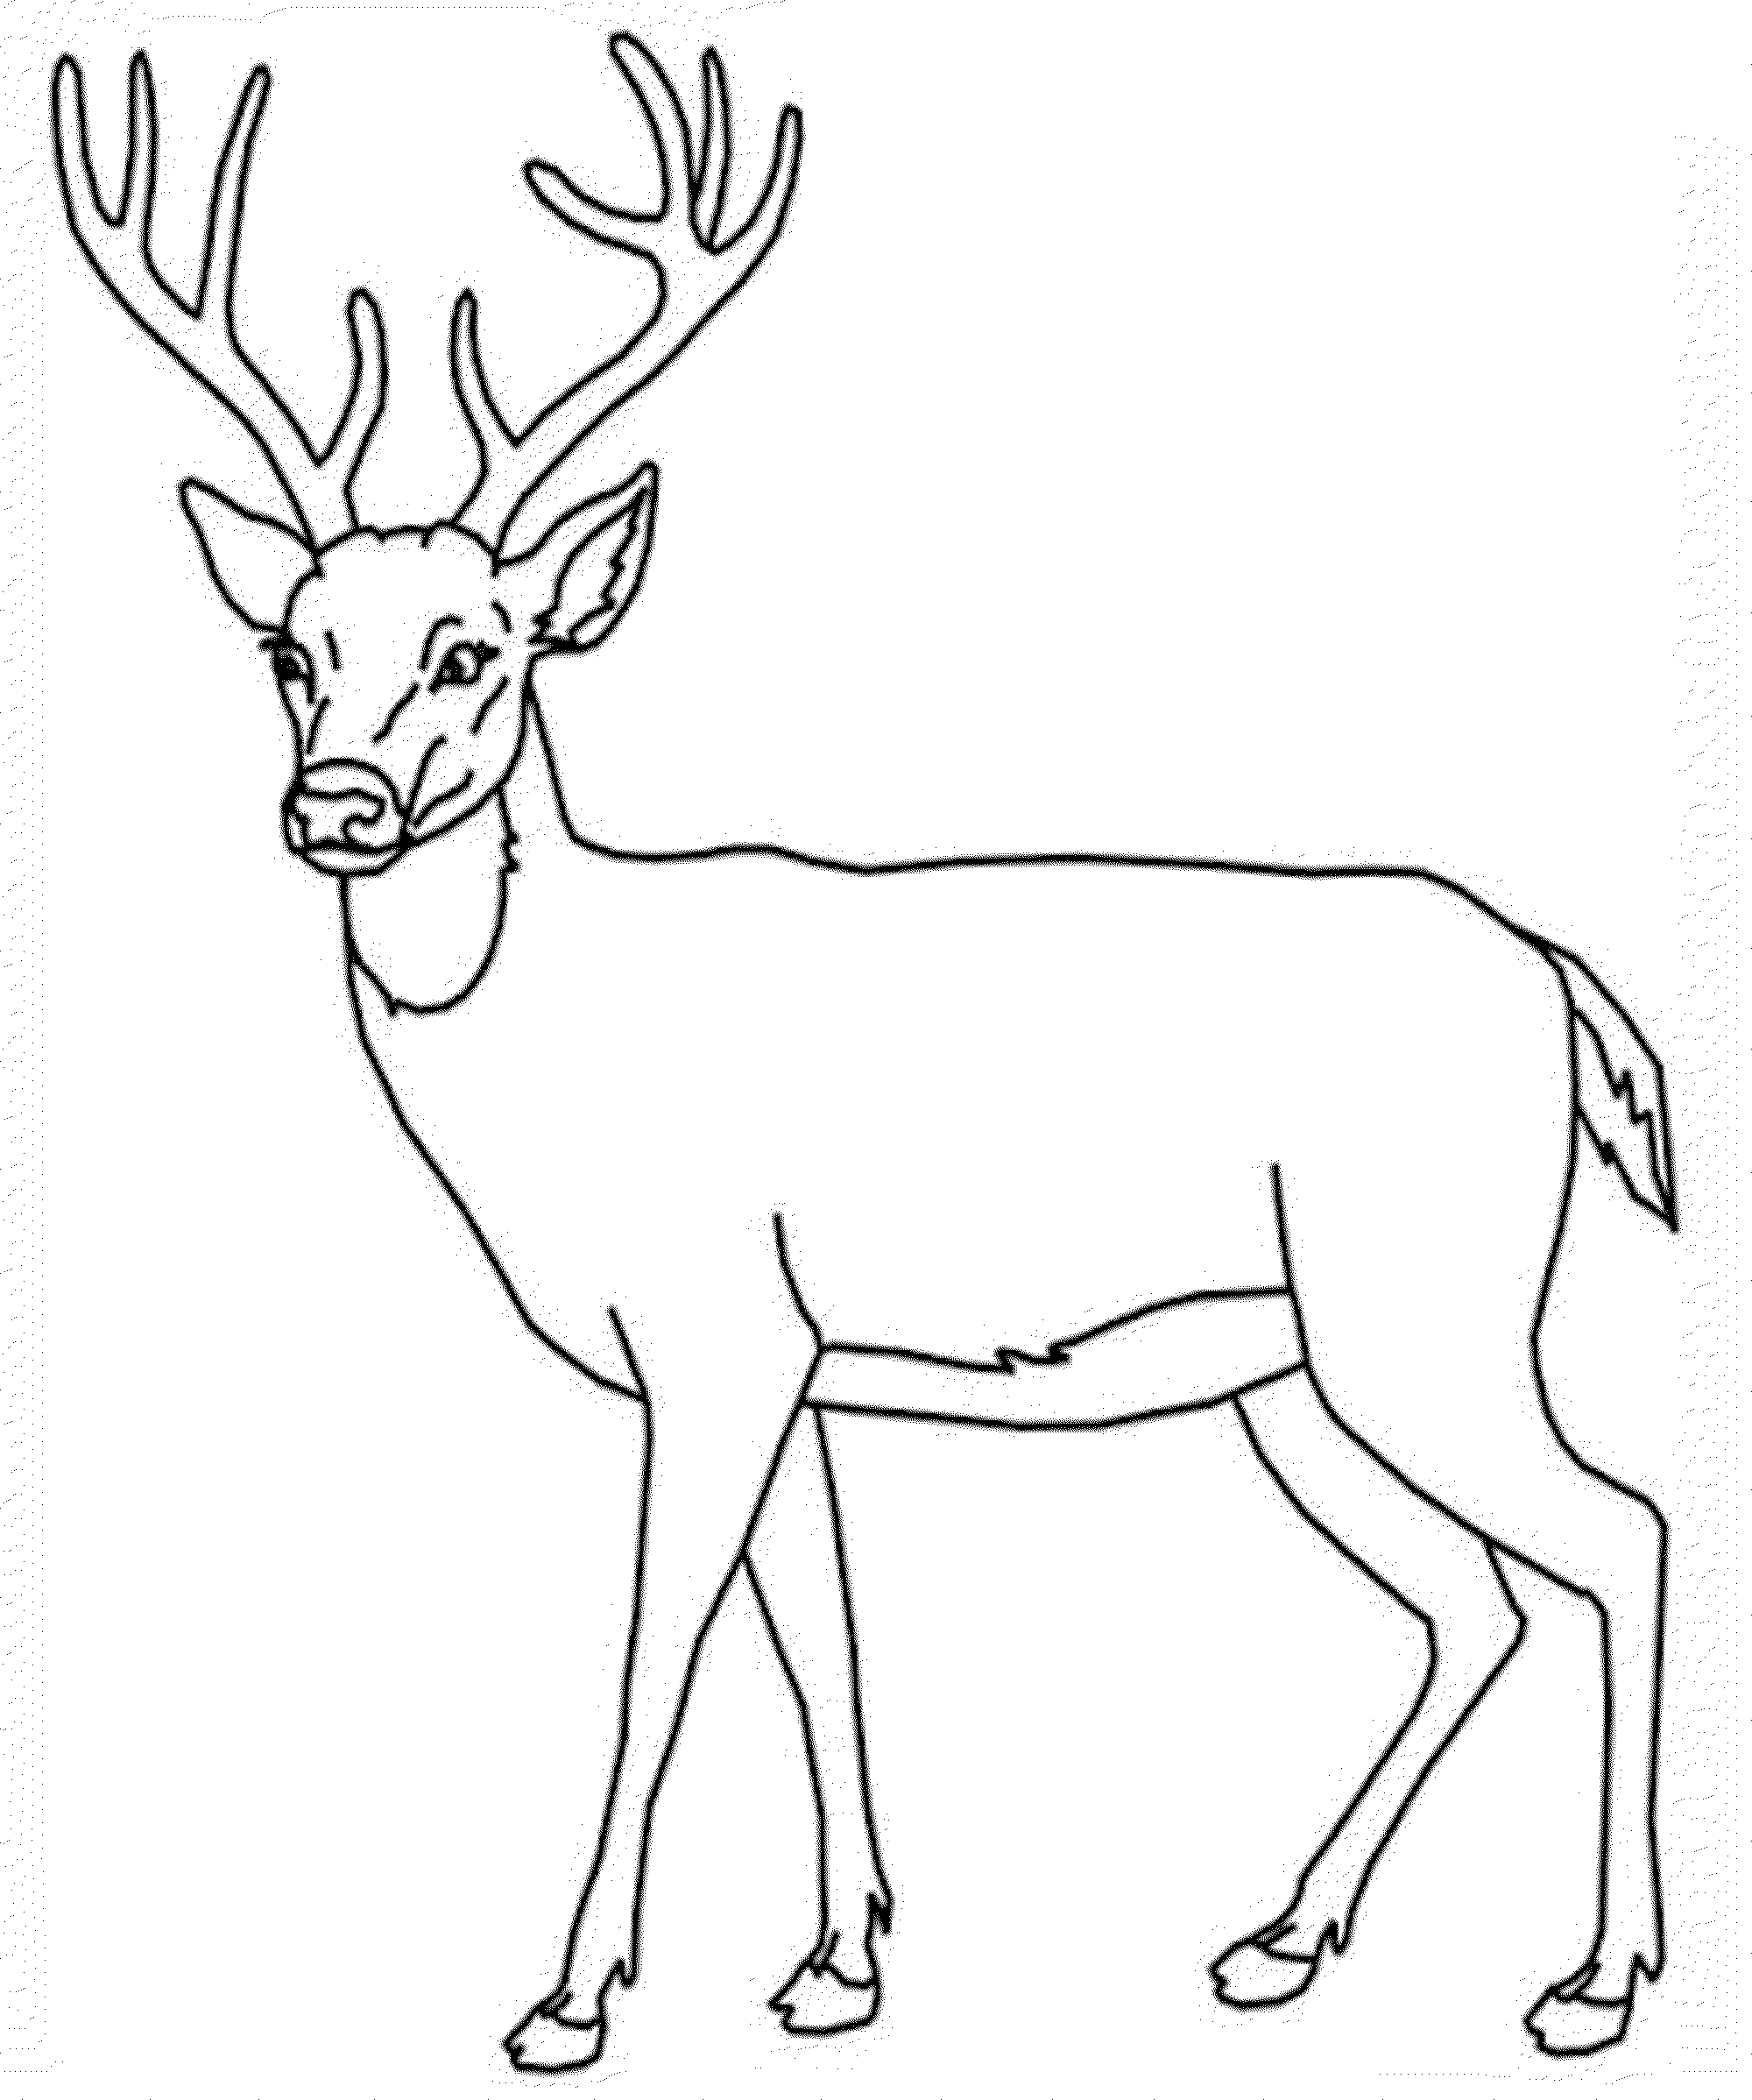 Deer Coloring Pages Kidsuki Adorable Animal Number 2 For Toddlers Polar Bear Witchcraft Page Beautiful Dragon Deer Coloring Pages Deer Drawing Animal Drawings